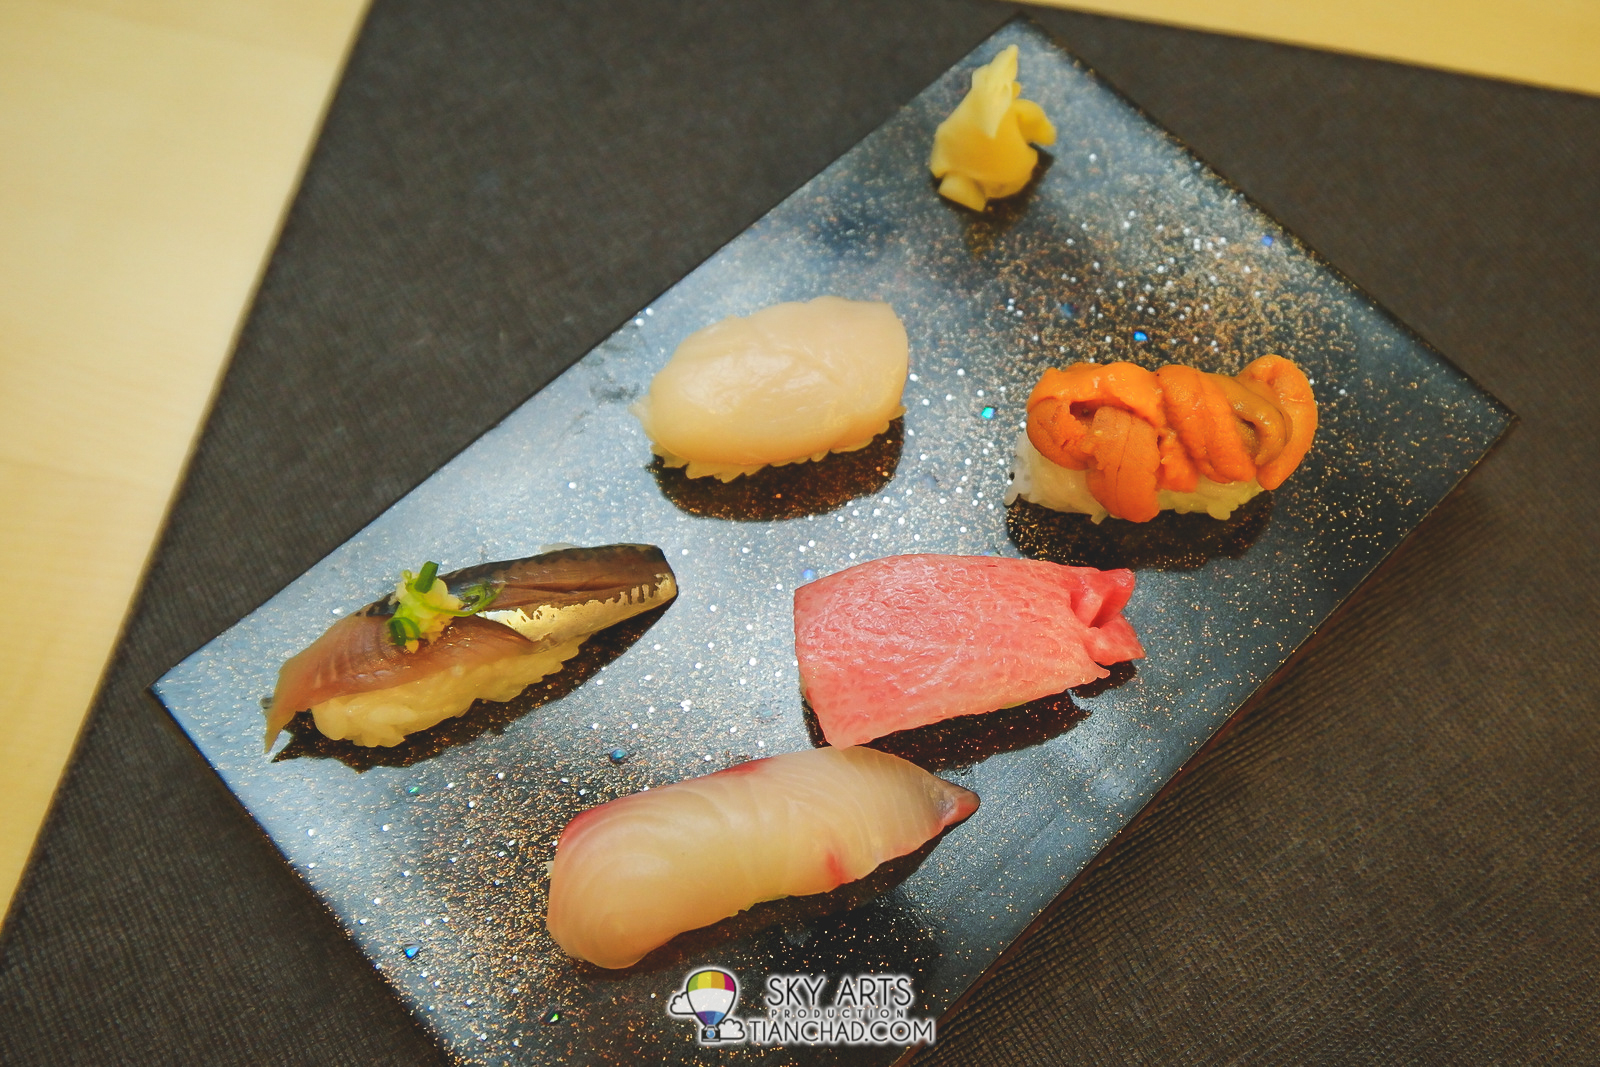 Chef's Recommended Seasonal Sushi: Sardine, Scallop, Kampachi, Otoro and Sea Urchin